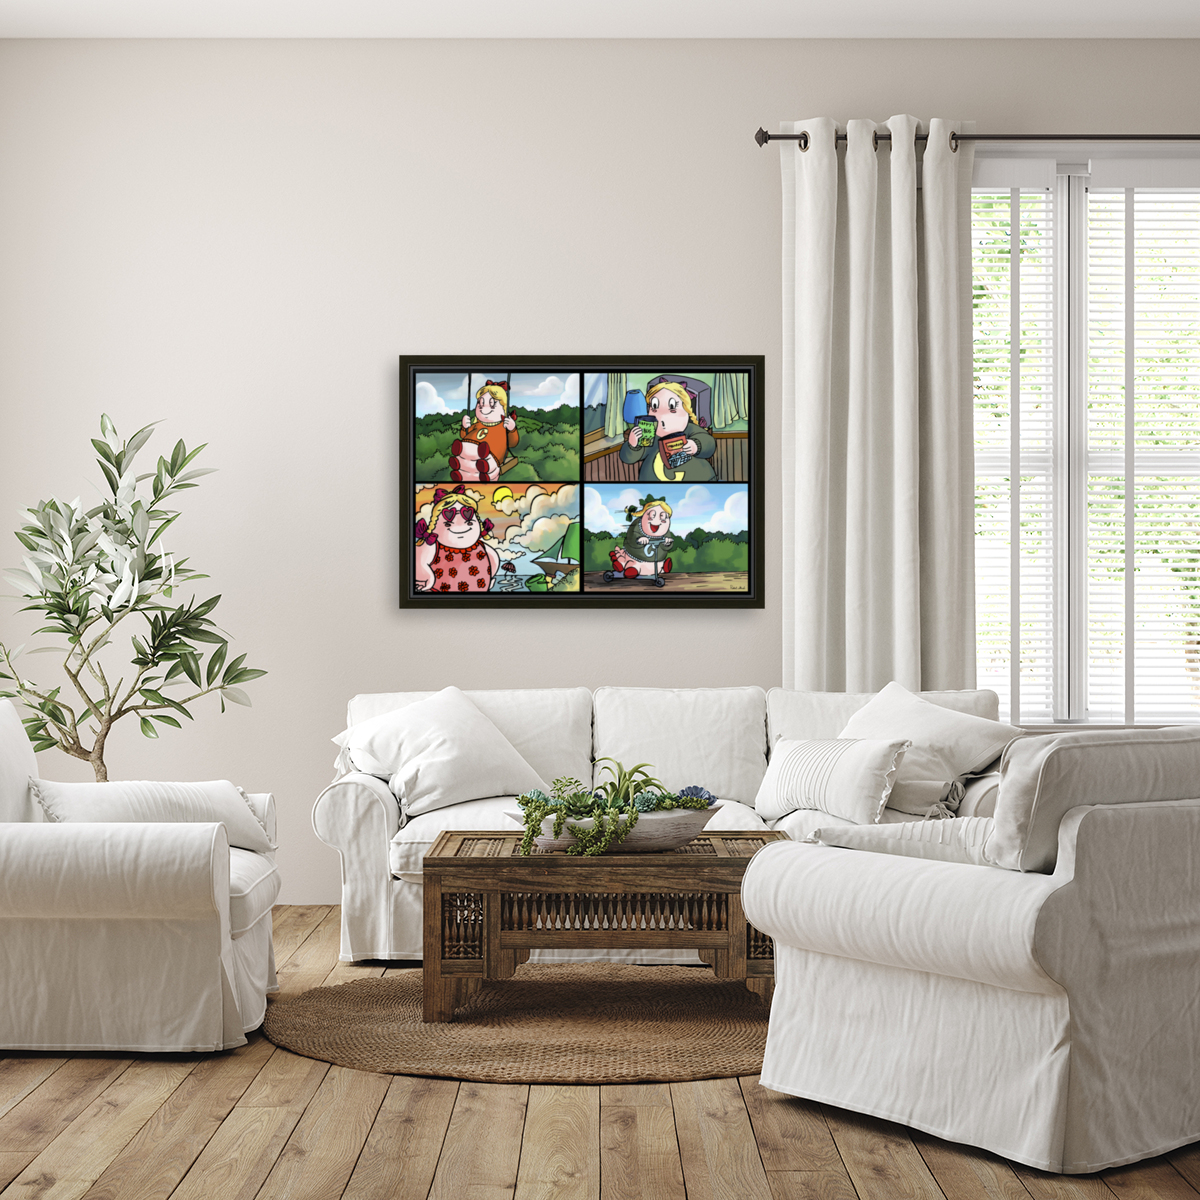 Cat the Caterpillar in Action   4 panel Favorites for Kids Room and Nursery   Bugville Critters  Art